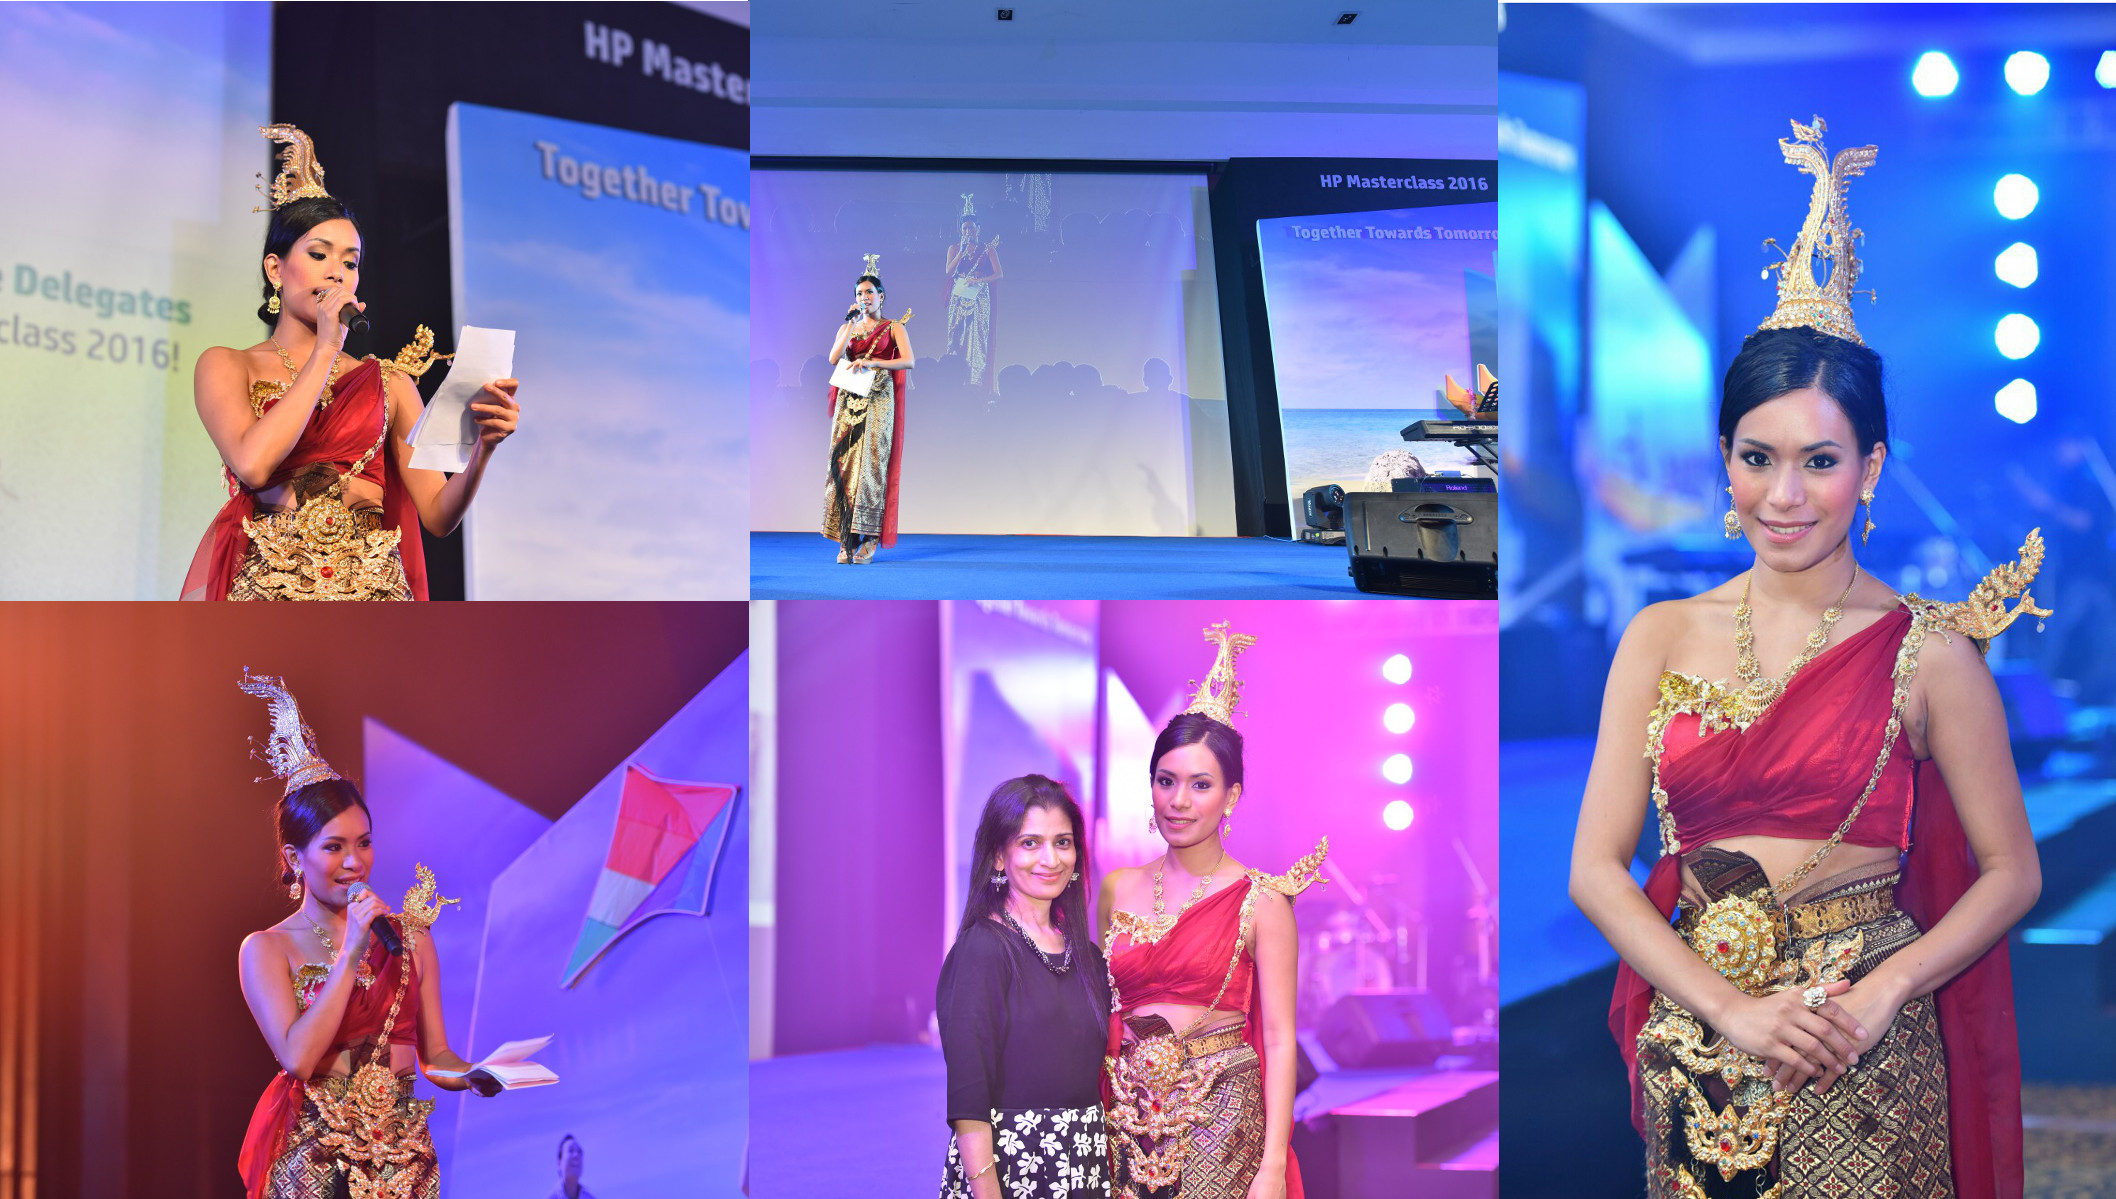 Hewlett-Packard Gala Dinner 2015